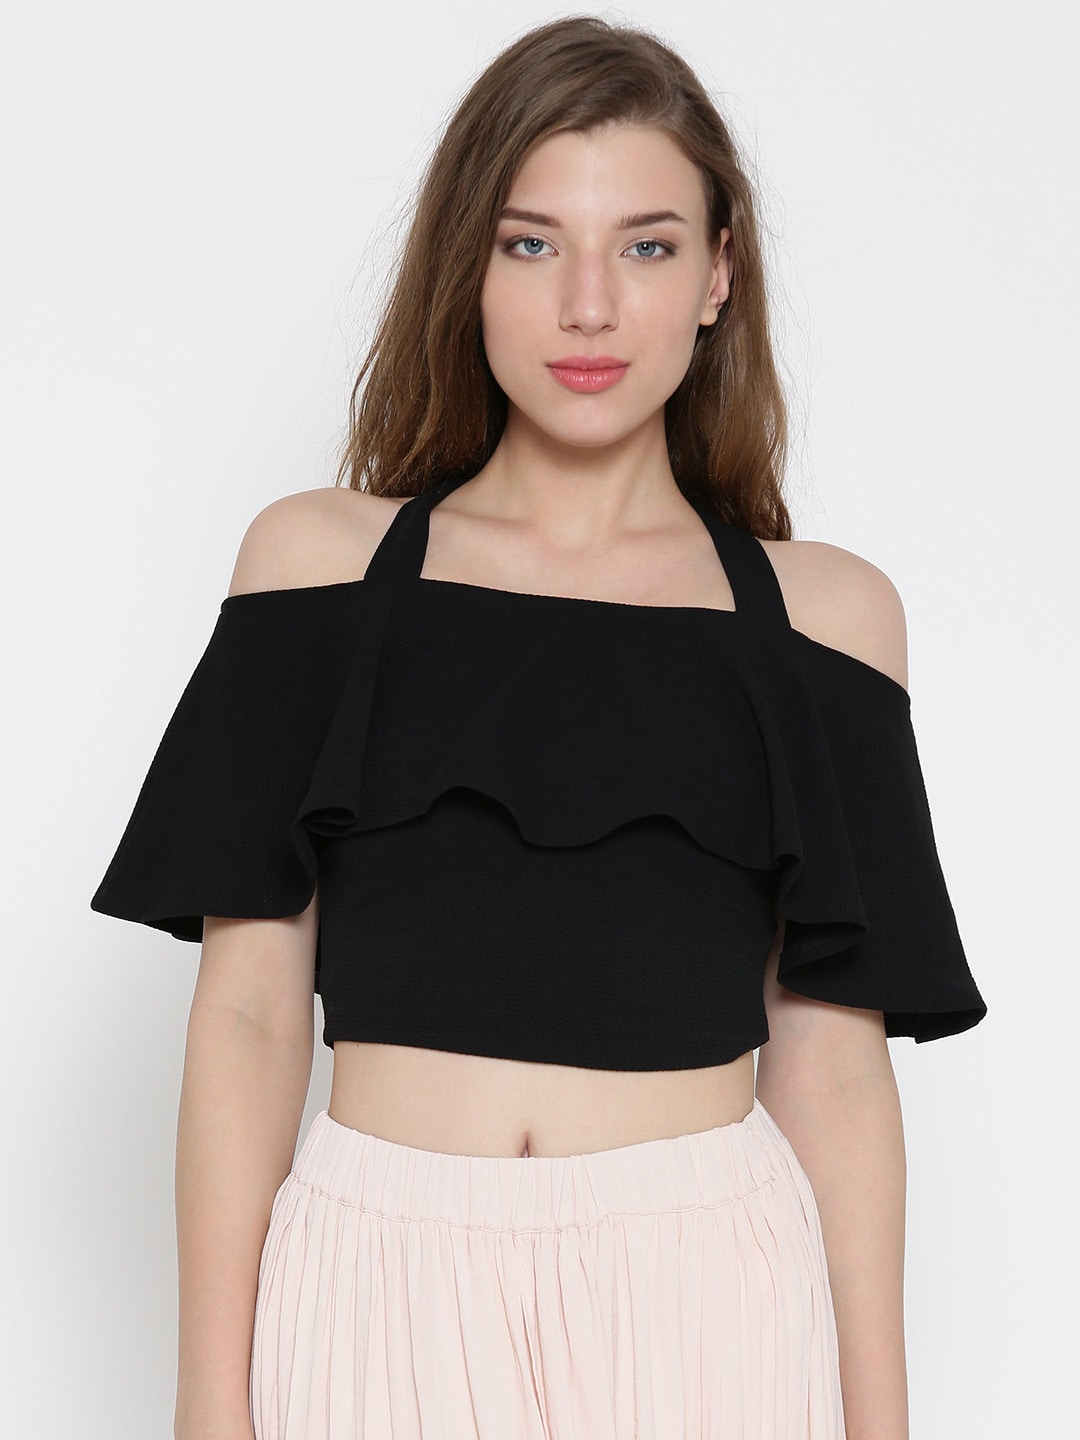 b77efc41cfbd0b Crop Tops - Buy Midriff Crop Tops Online for Women in India